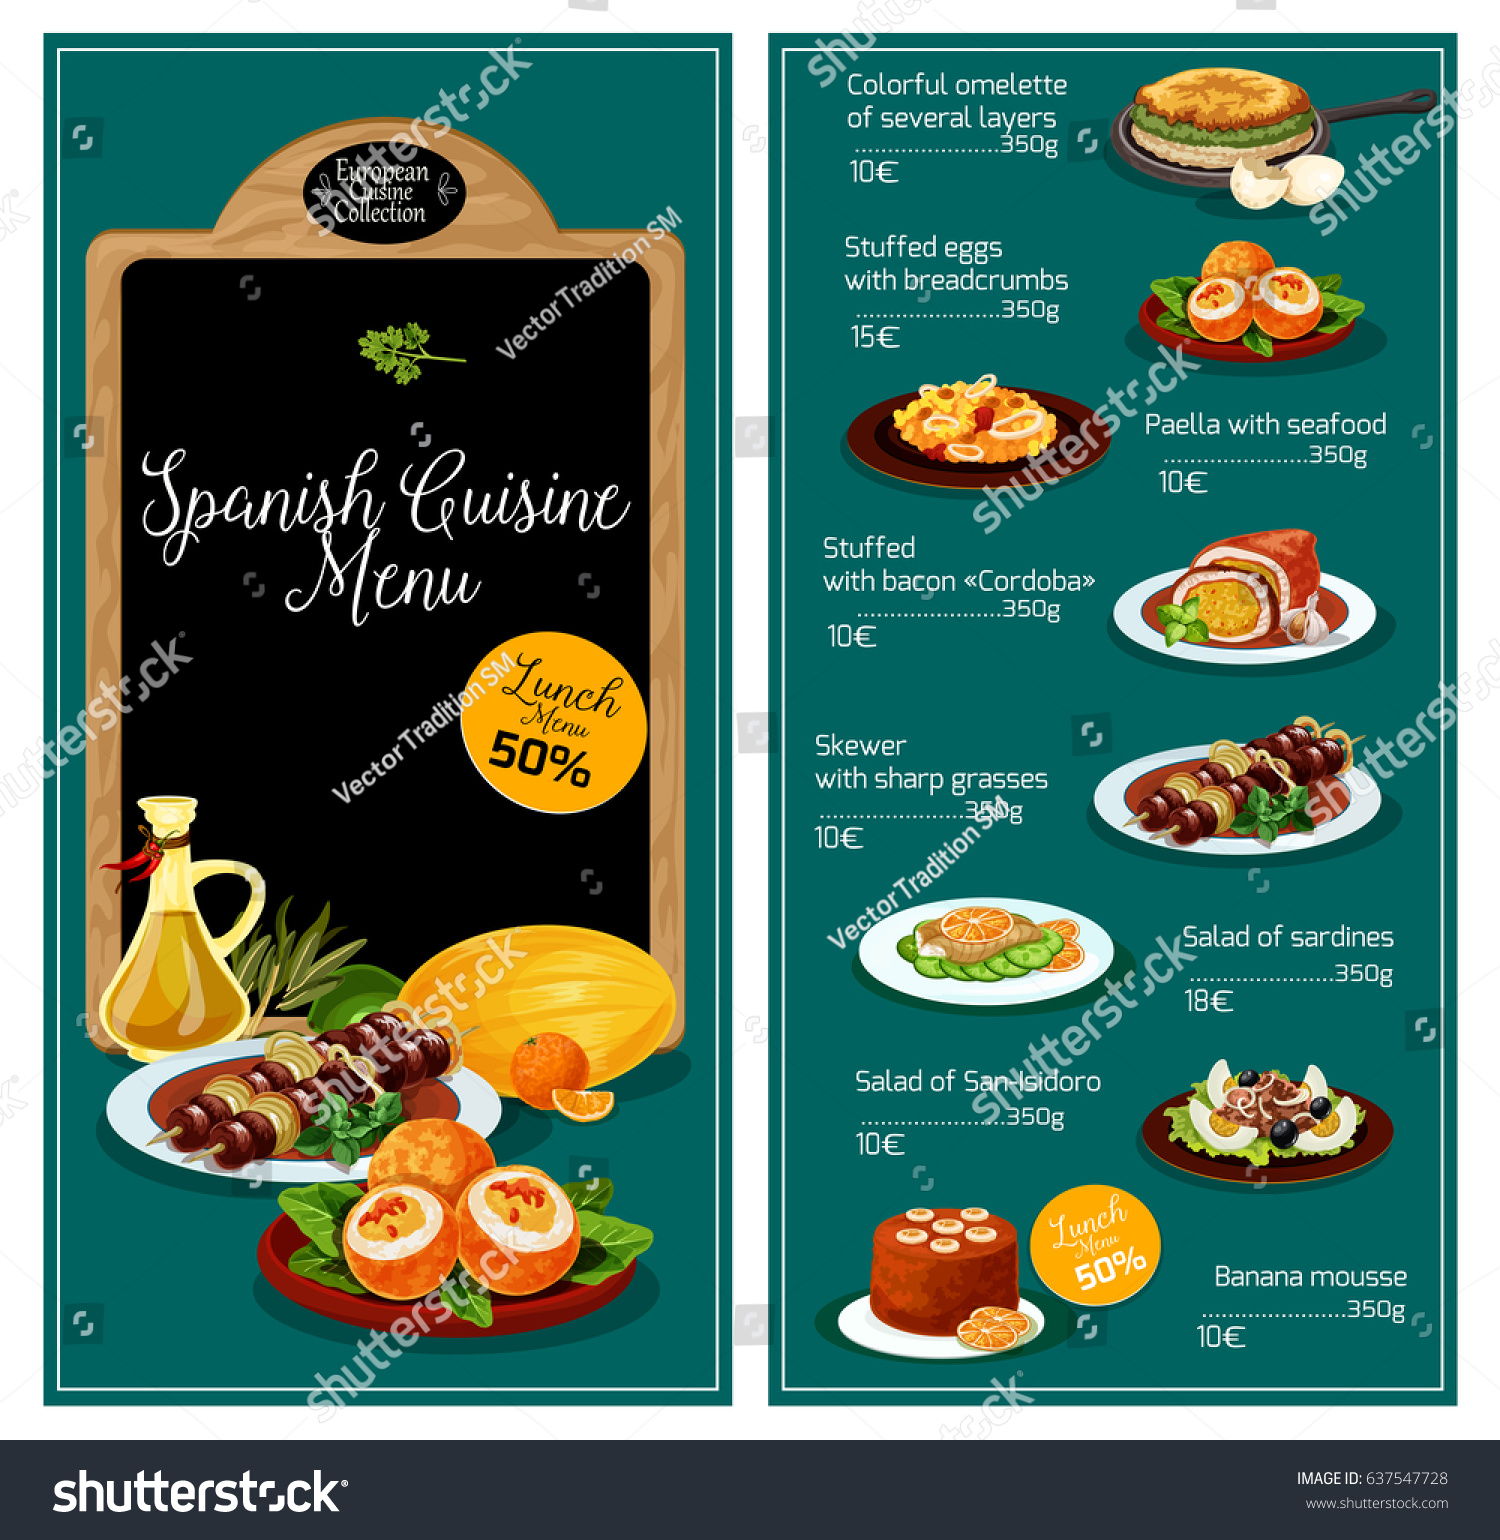 Spanish cuisine restaurant menu spain traditional stock for Conception cuisine snack